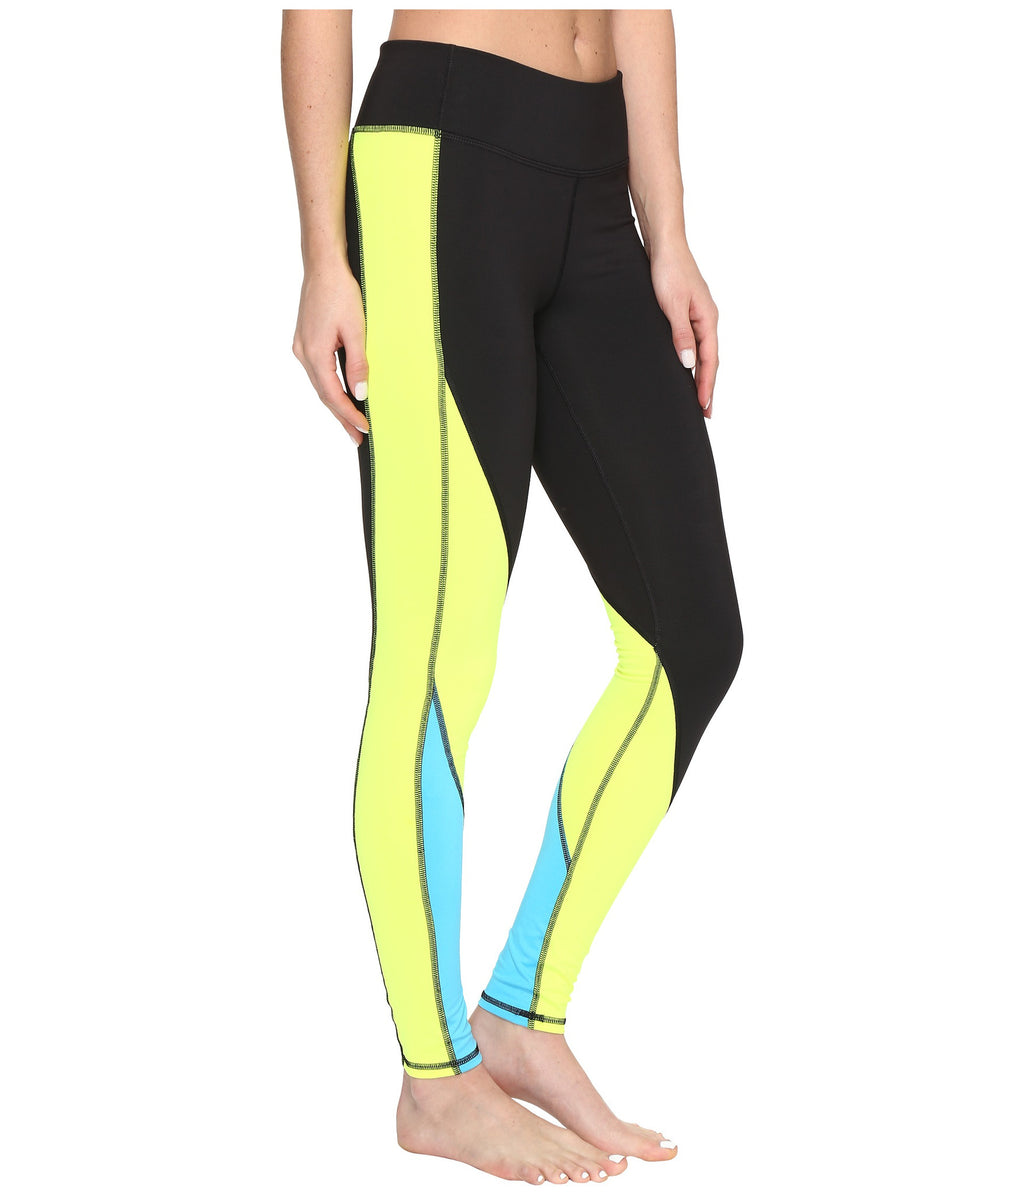 PUMA Clash Tights Women | Black / Safety Yellow (515124-04)